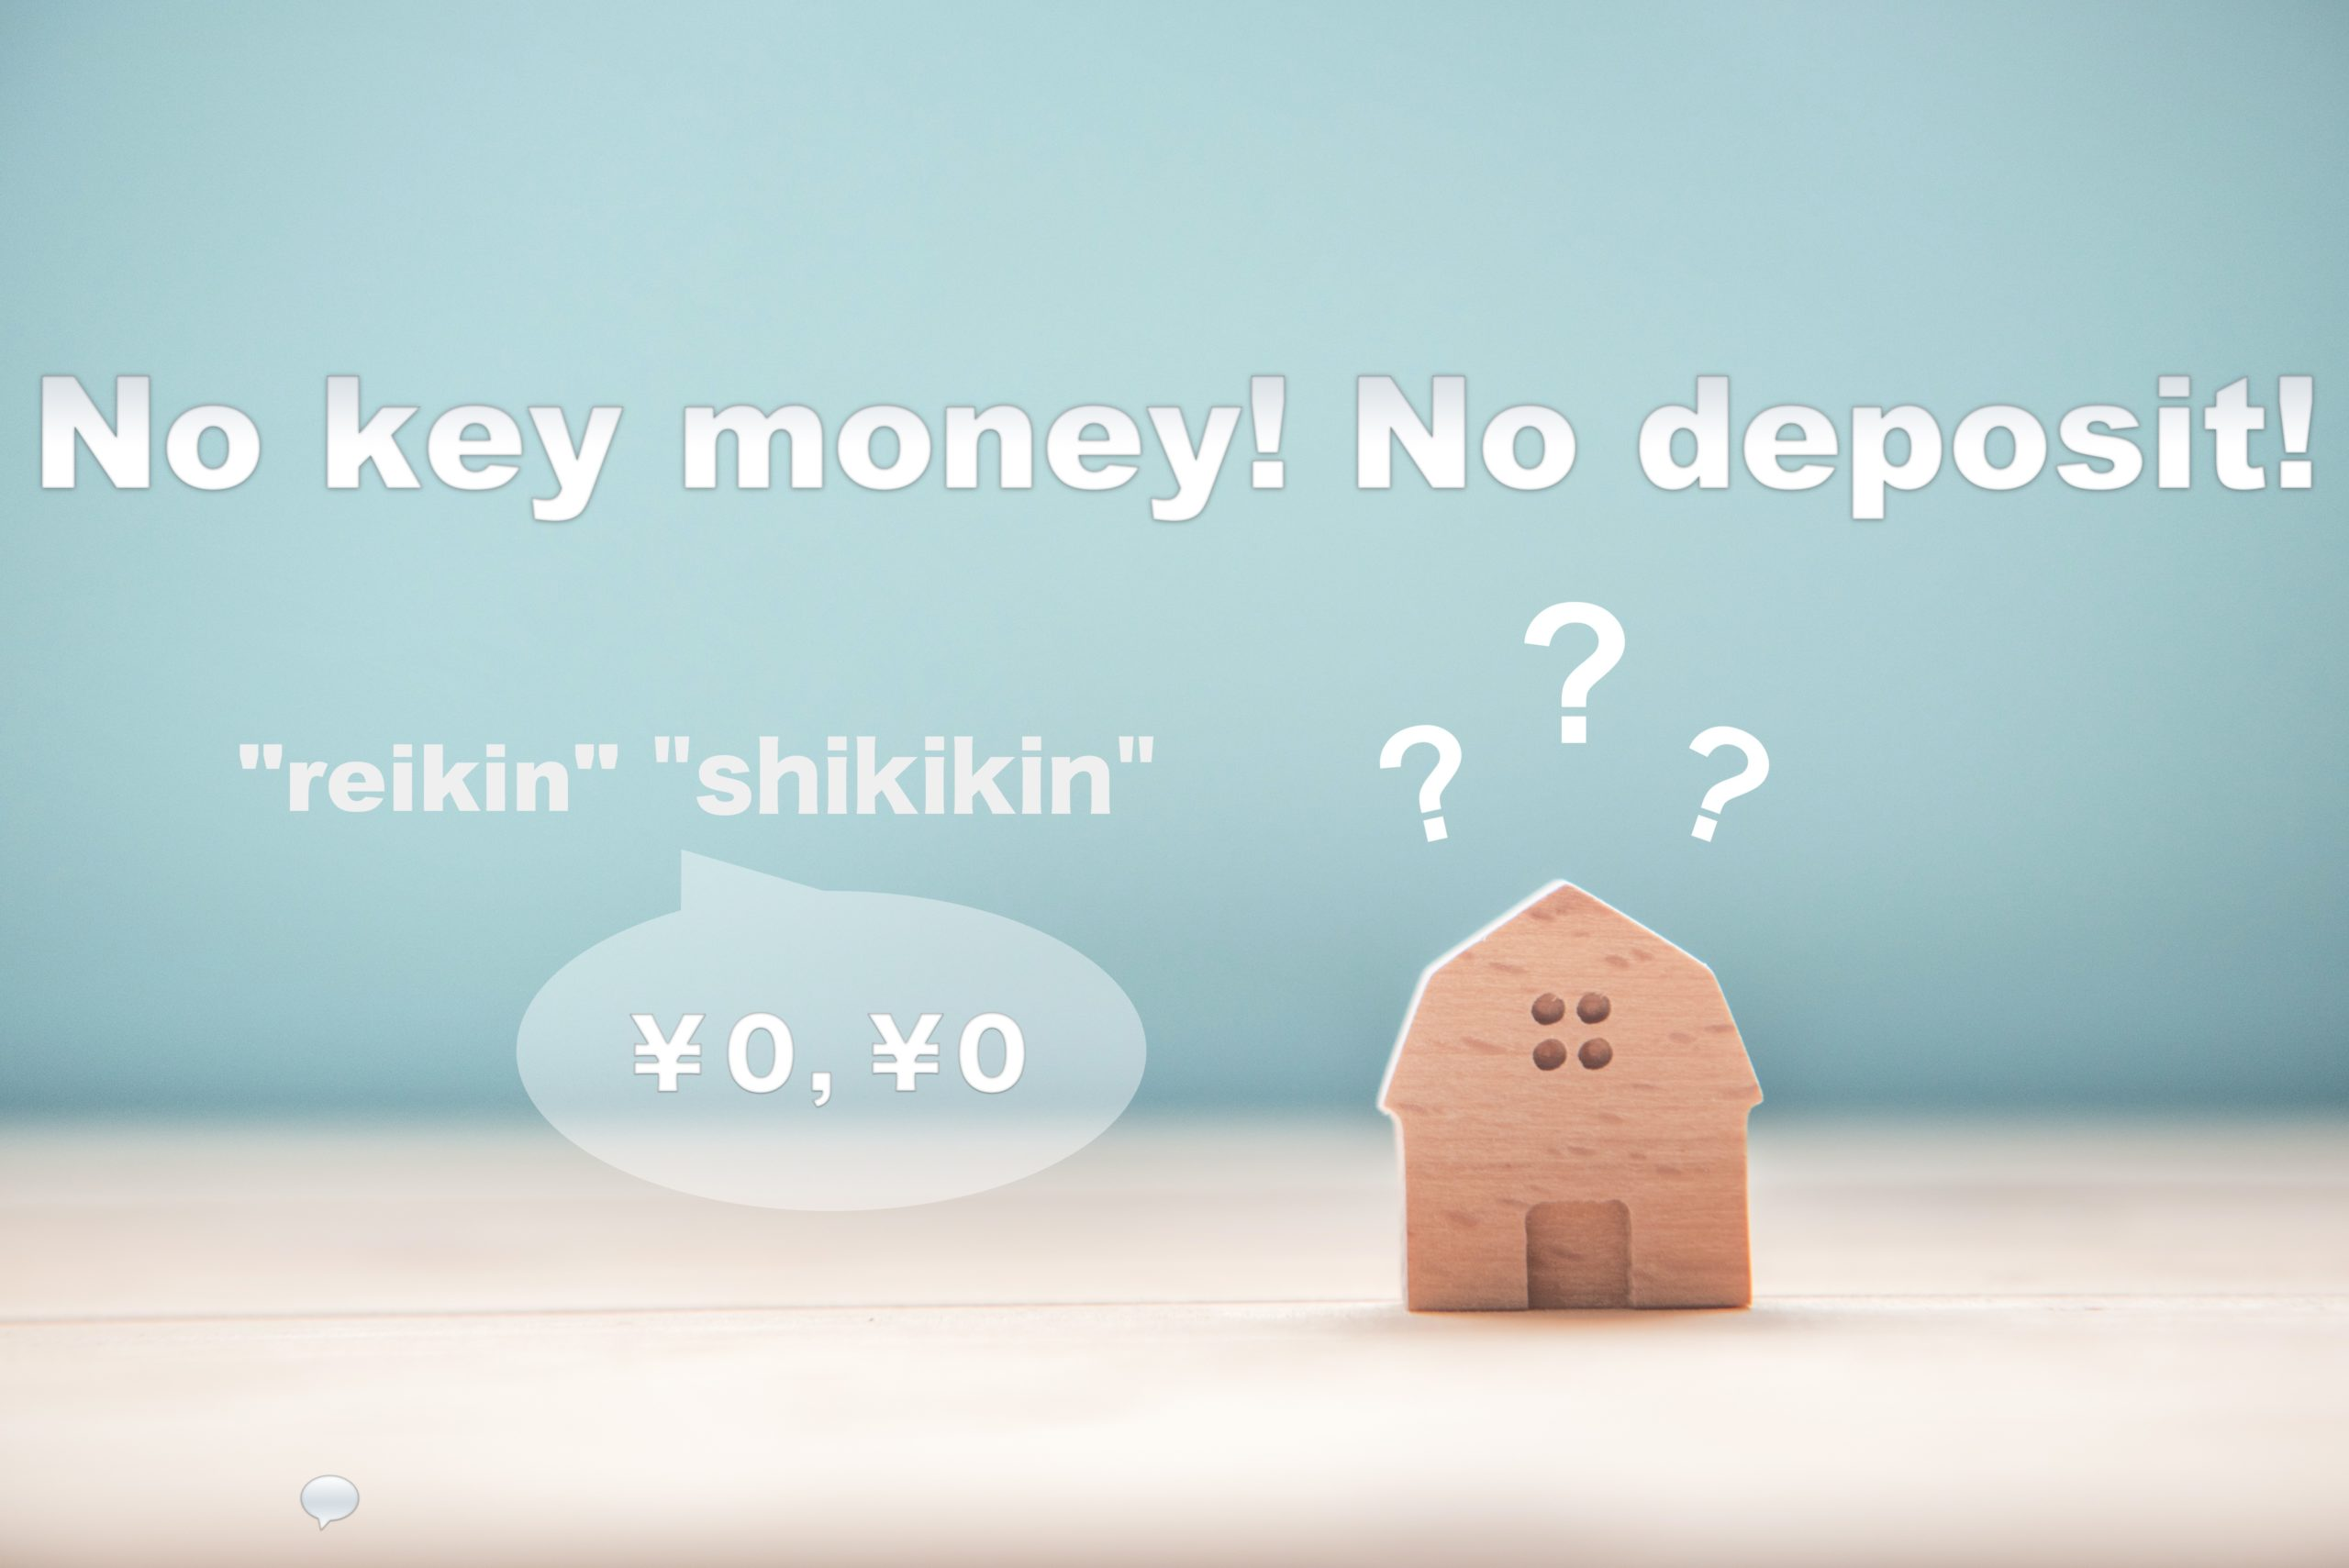 no key money! no deposit!